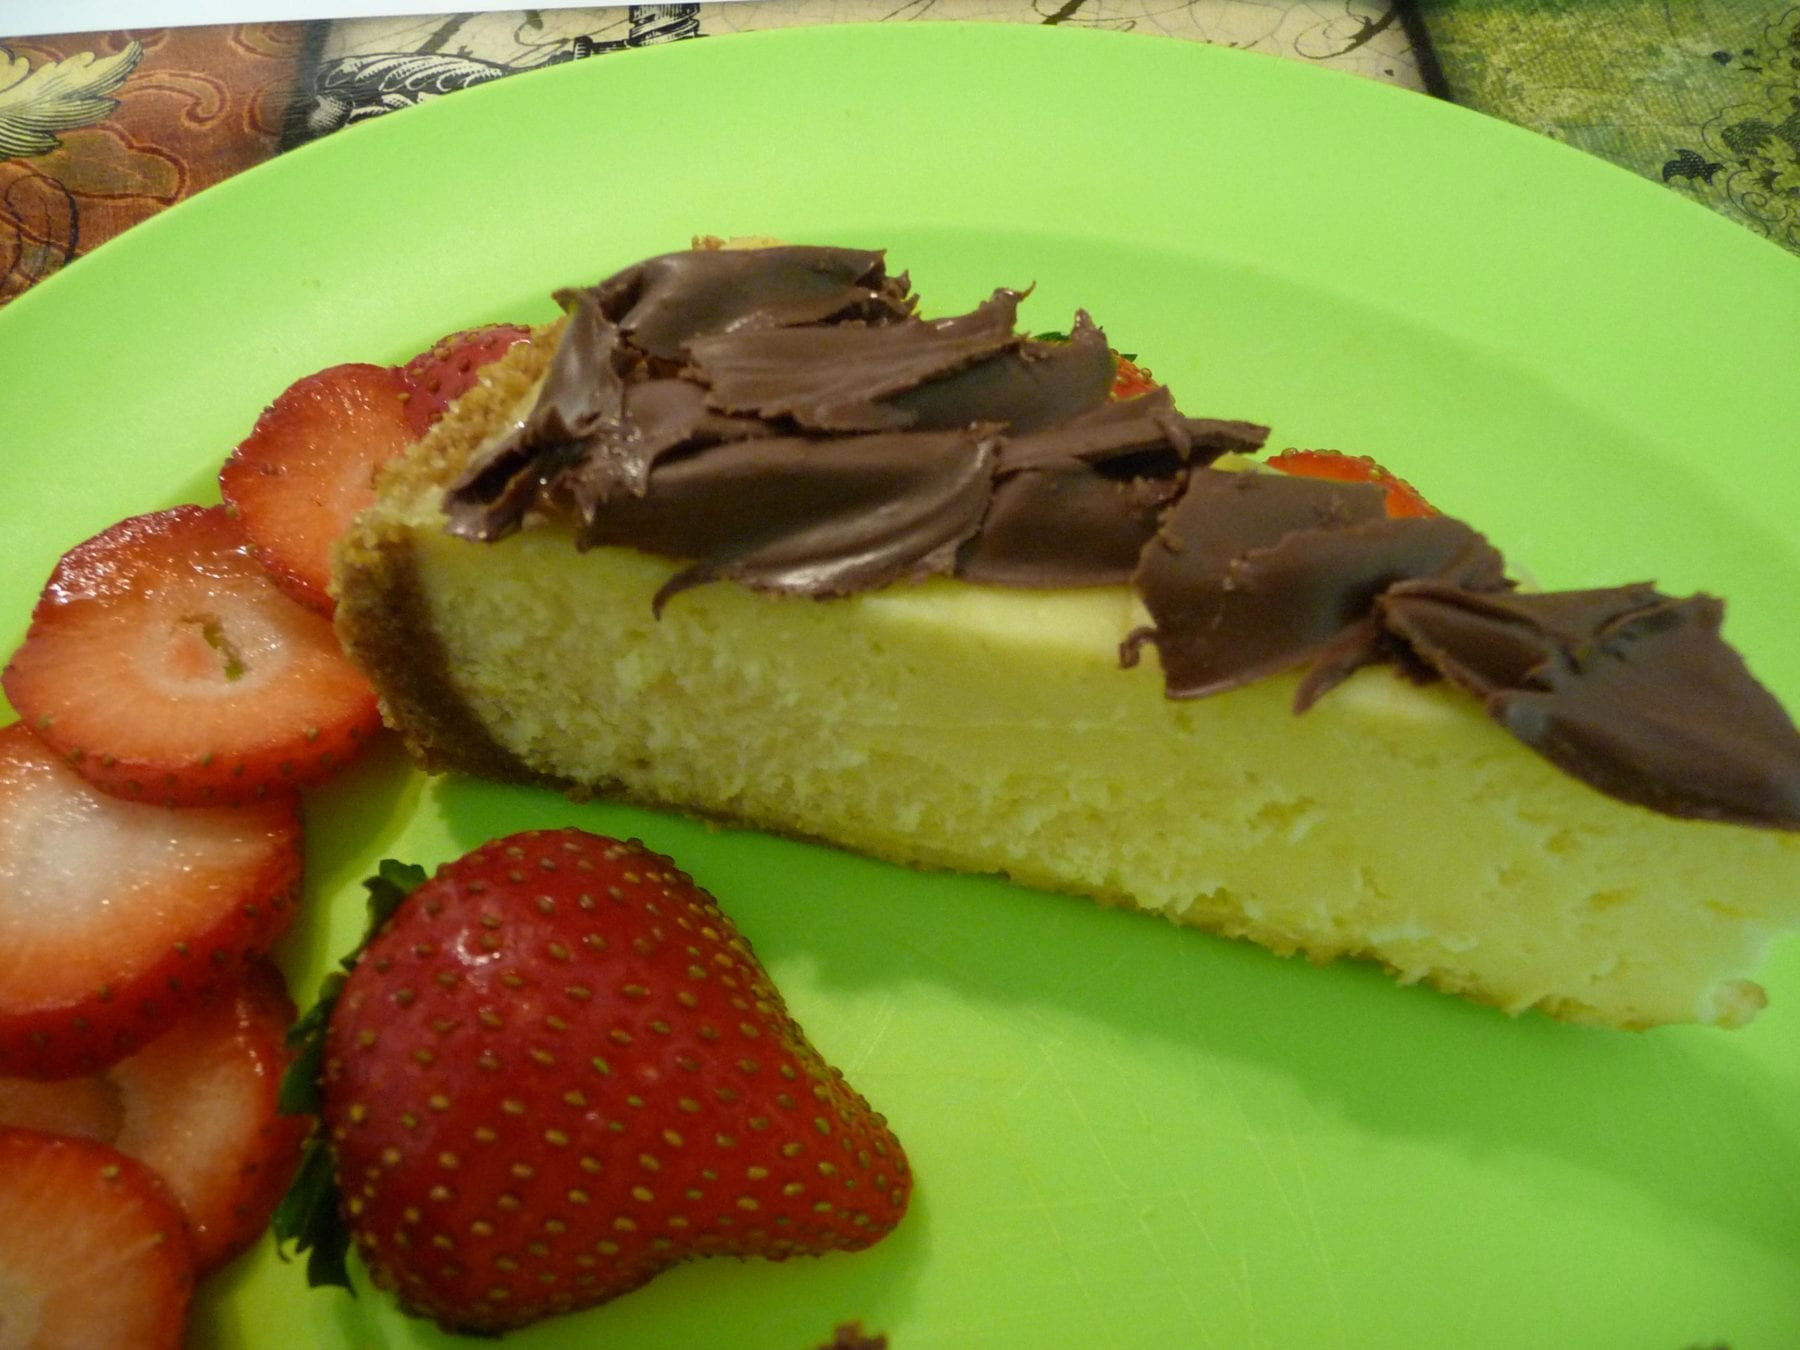 NY Cheesecake with strawberries and nutella